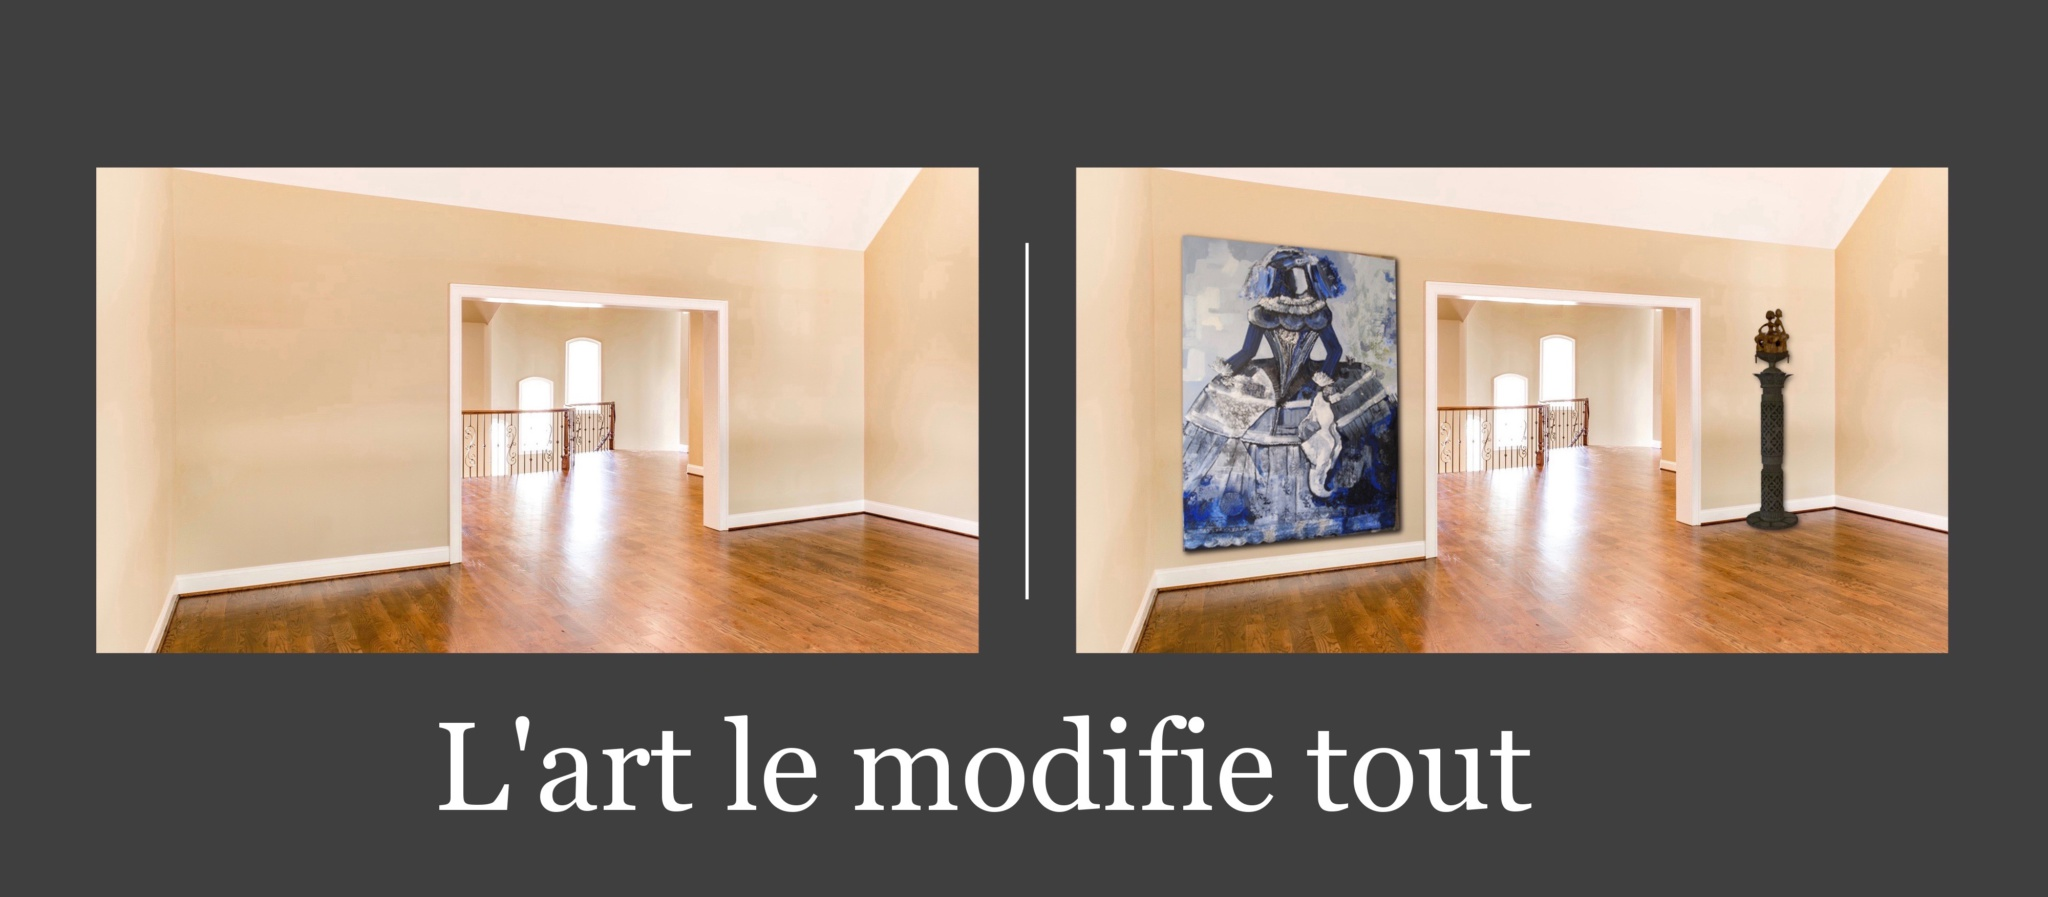 L'art le modifie tout